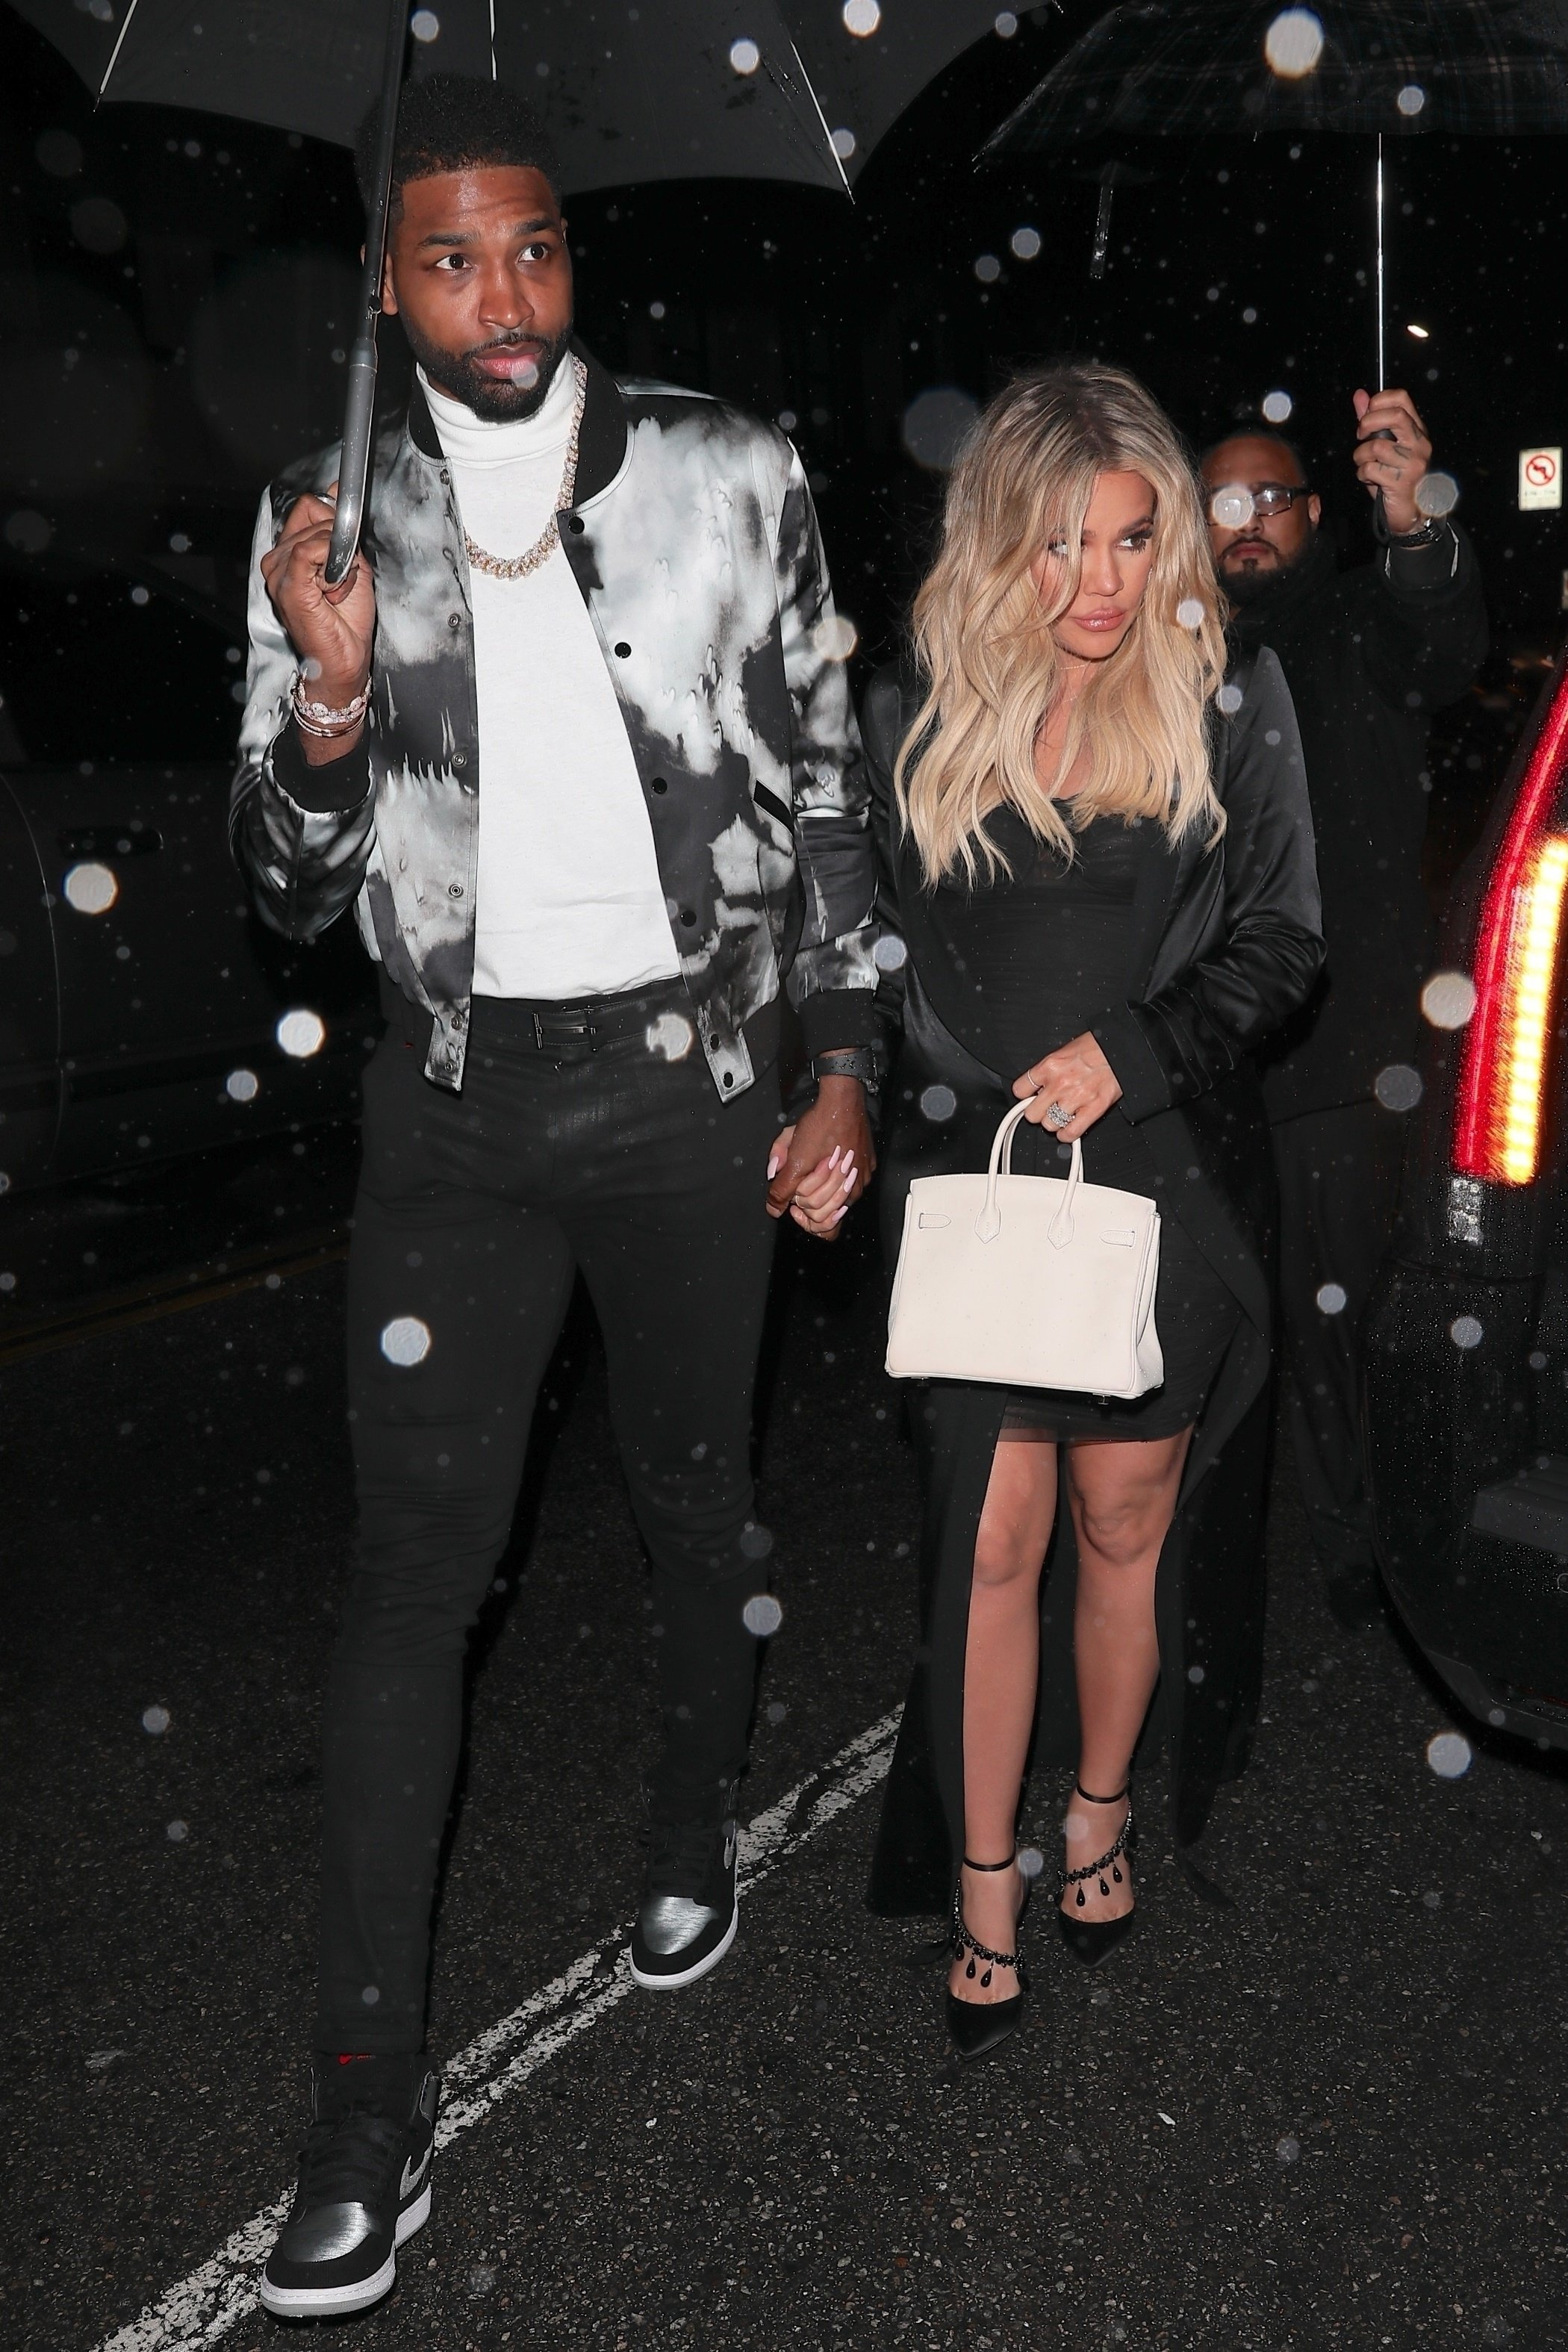 Hollywood, CA  - Stars arrive at Tristan Thompson's early 27th birthday celebration at Beauty & Essex in Hollywood after Khloe Kardashian's baby shower in Bel Air.  Pictured: Tristan Thompson, Khloe Kardashian  BACKGRID USA 10 MARCH 2018, Image: 365737175, License: Rights-managed, Restrictions: , Model Release: no, Credit line: Profimedia, AKM-GSI